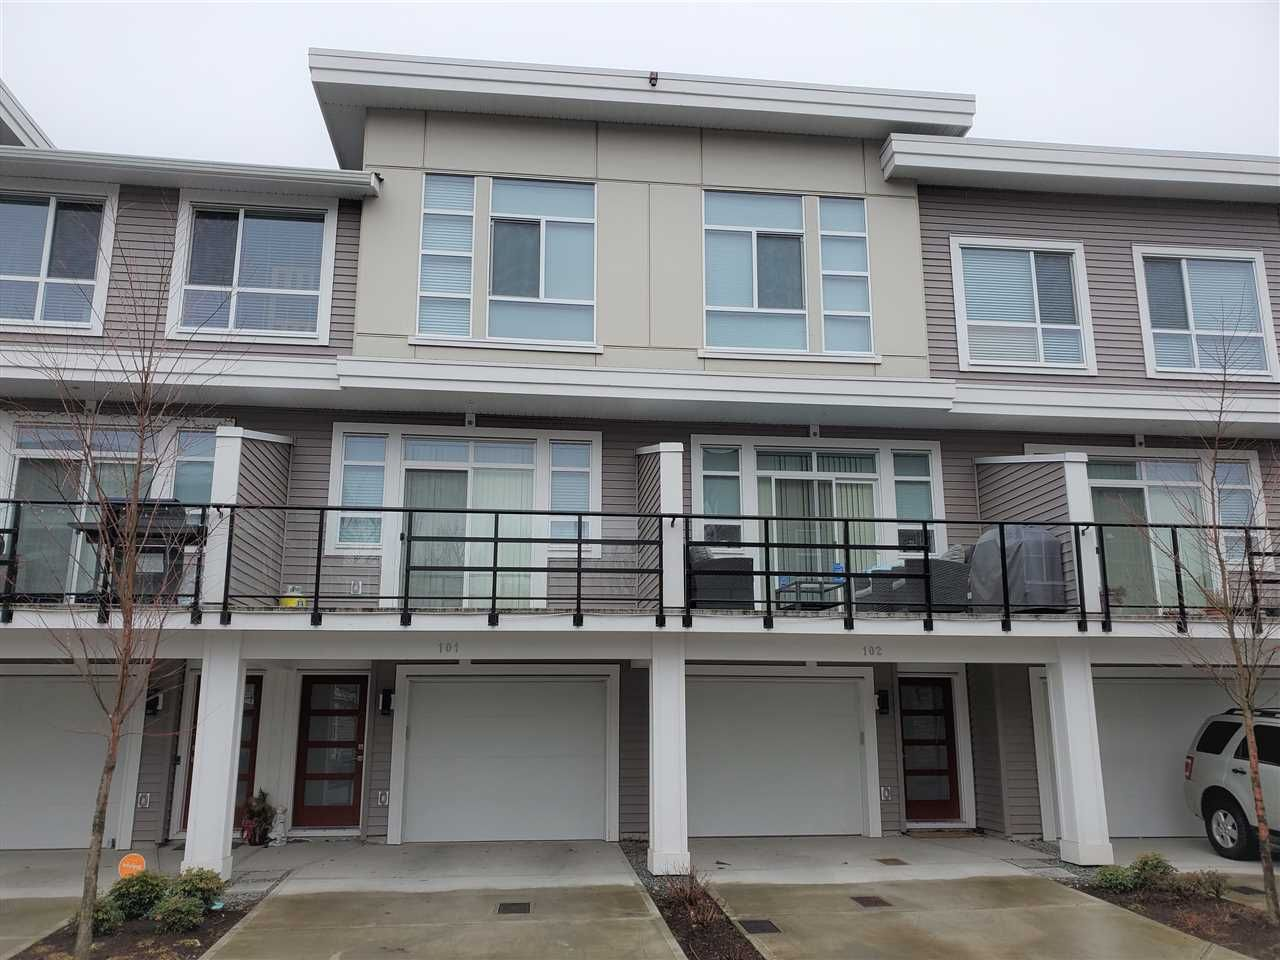 Main Photo: 101 8413 MIDTOWN Way in Chilliwack: Chilliwack W Young-Well Townhouse for sale : MLS®# R2540061